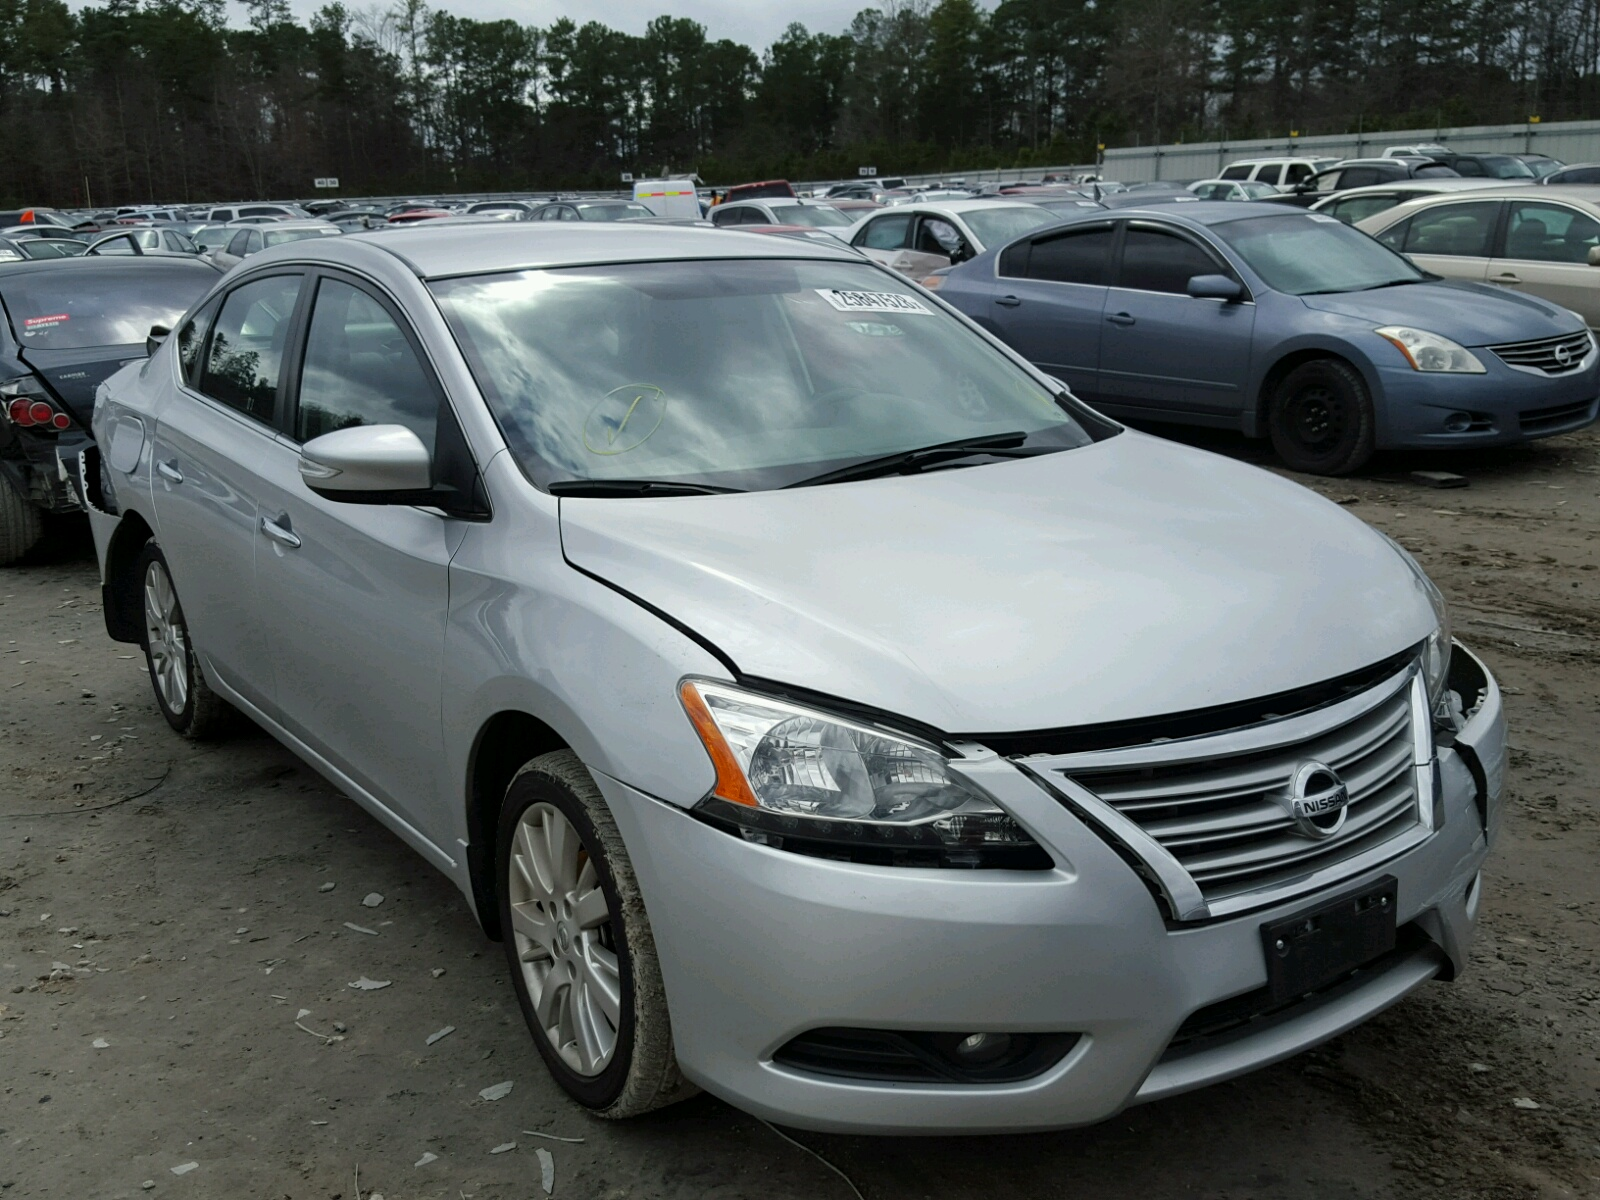 in south nissan carfinder ga en of online on lot sentra auto silver view s copart atlanta salvage left cert auctions title sale